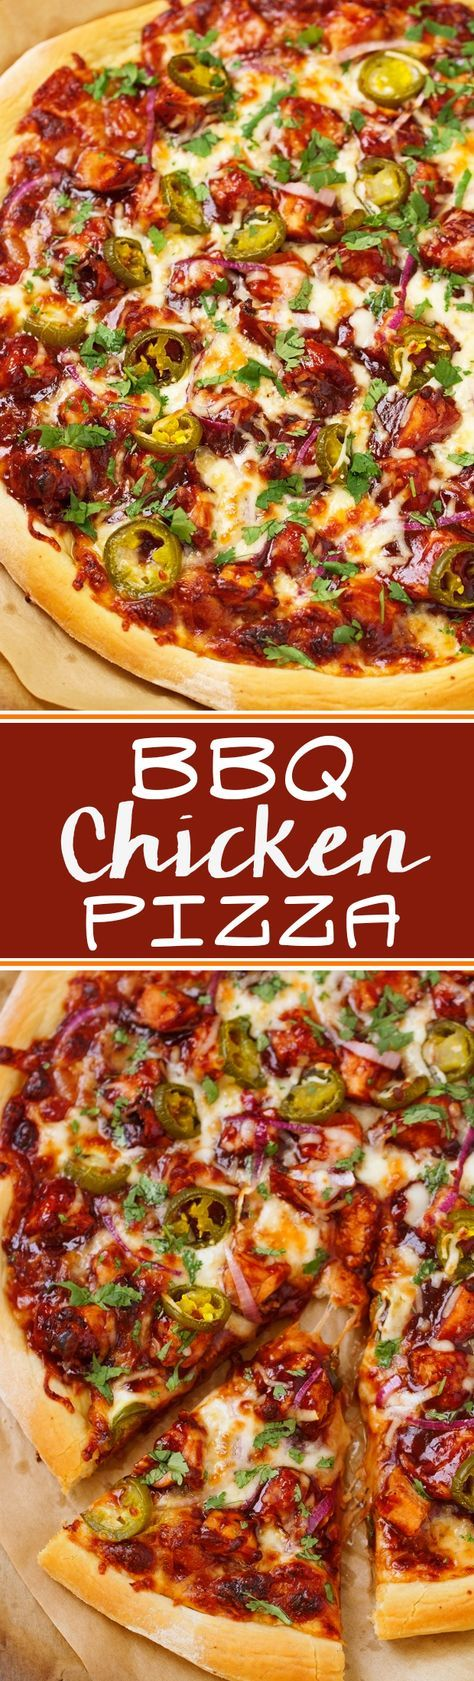 BBQ Chicken Pizza - made with grilled chicken, sliced jalapenos and red onions, and cilantro, So good you'll never go to CPK again!#bbqchickenpizza #chickenpizza #bbqpizza   Littlespicejar.com @Marzia   Little Spice Jar